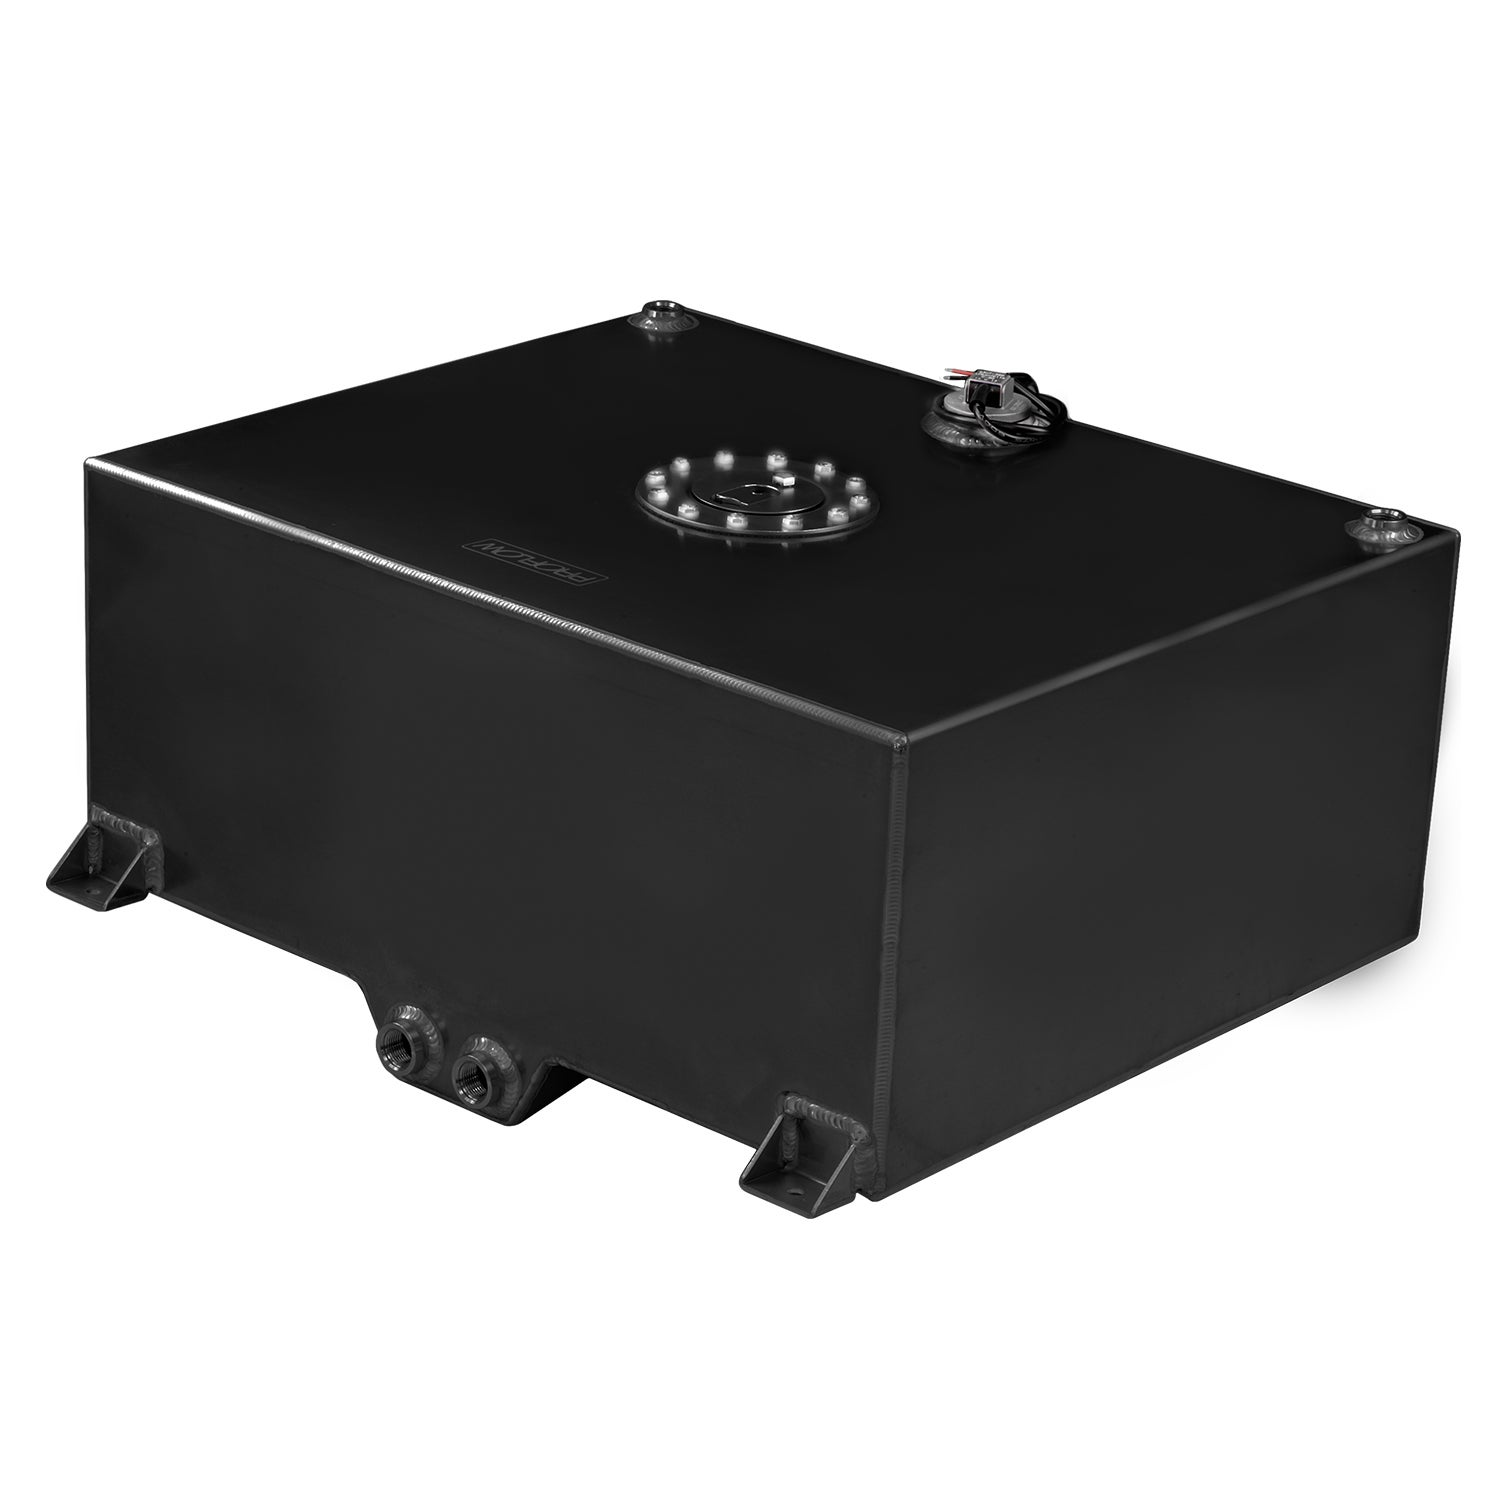 Proflow Fuel Cell Tank 15g 57L Aluminium Black 510 x 460 x 260mm With Sender Two -10 AN Female Outlets Each